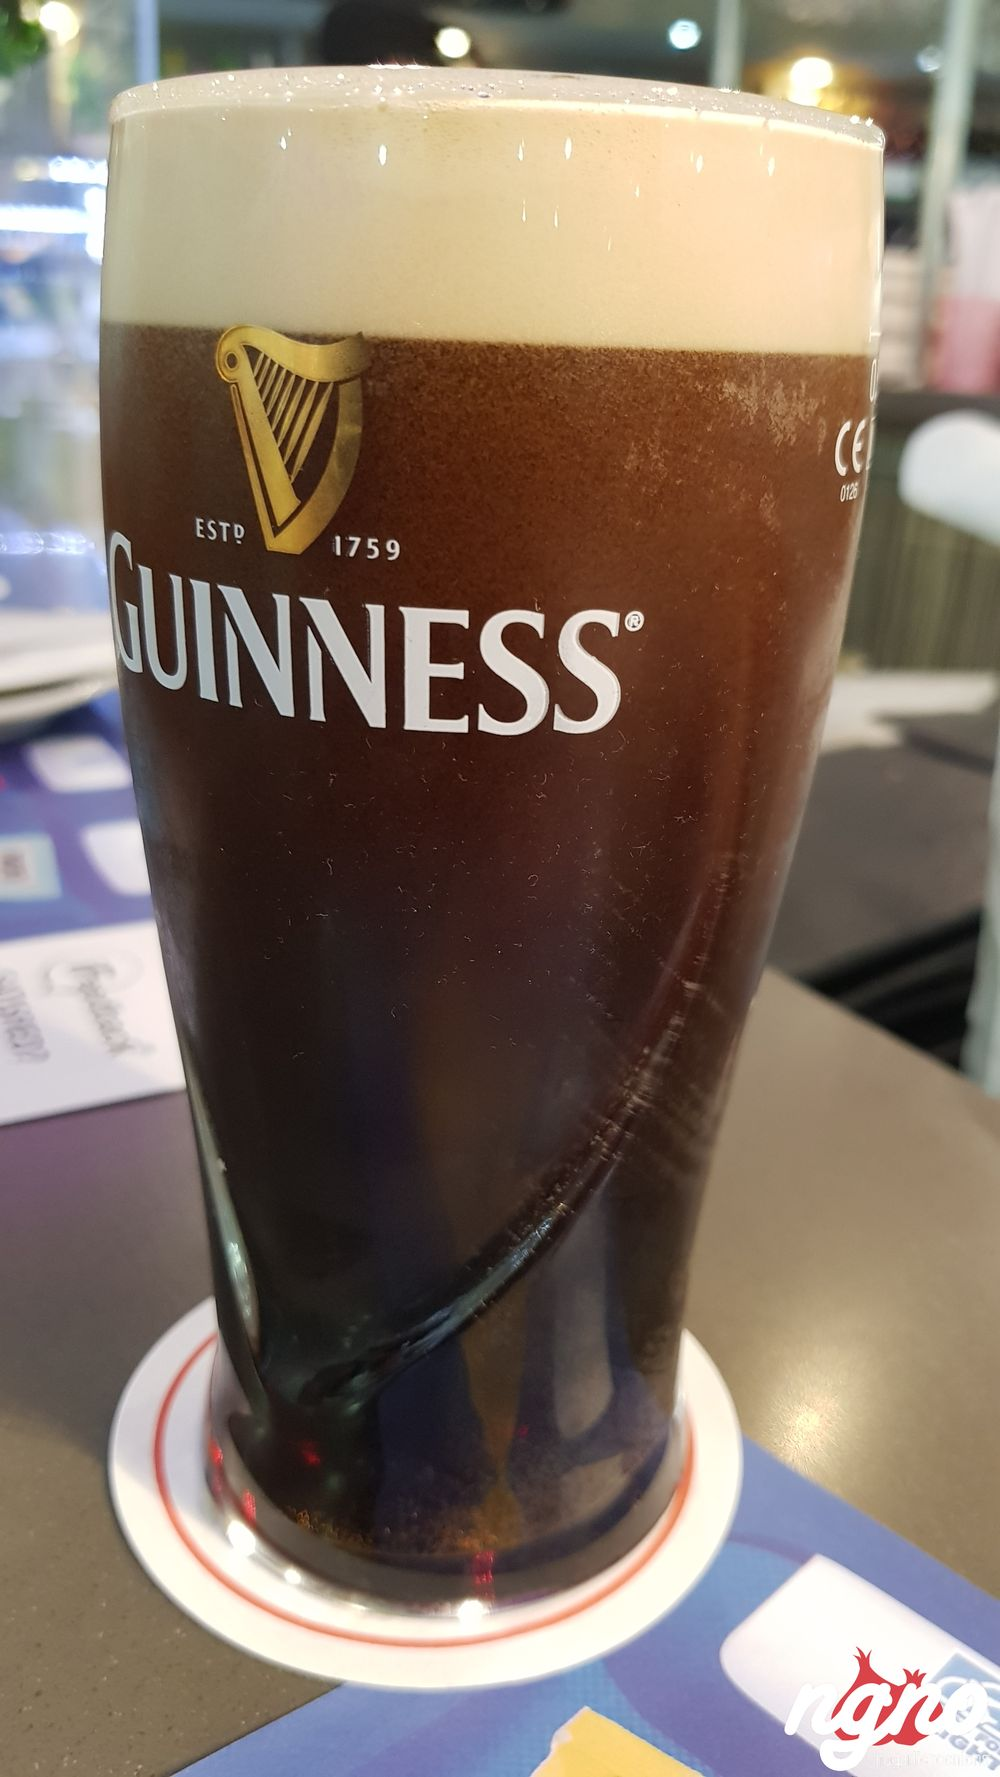 central-bar-athens-airport172017-09-12-01-47-04